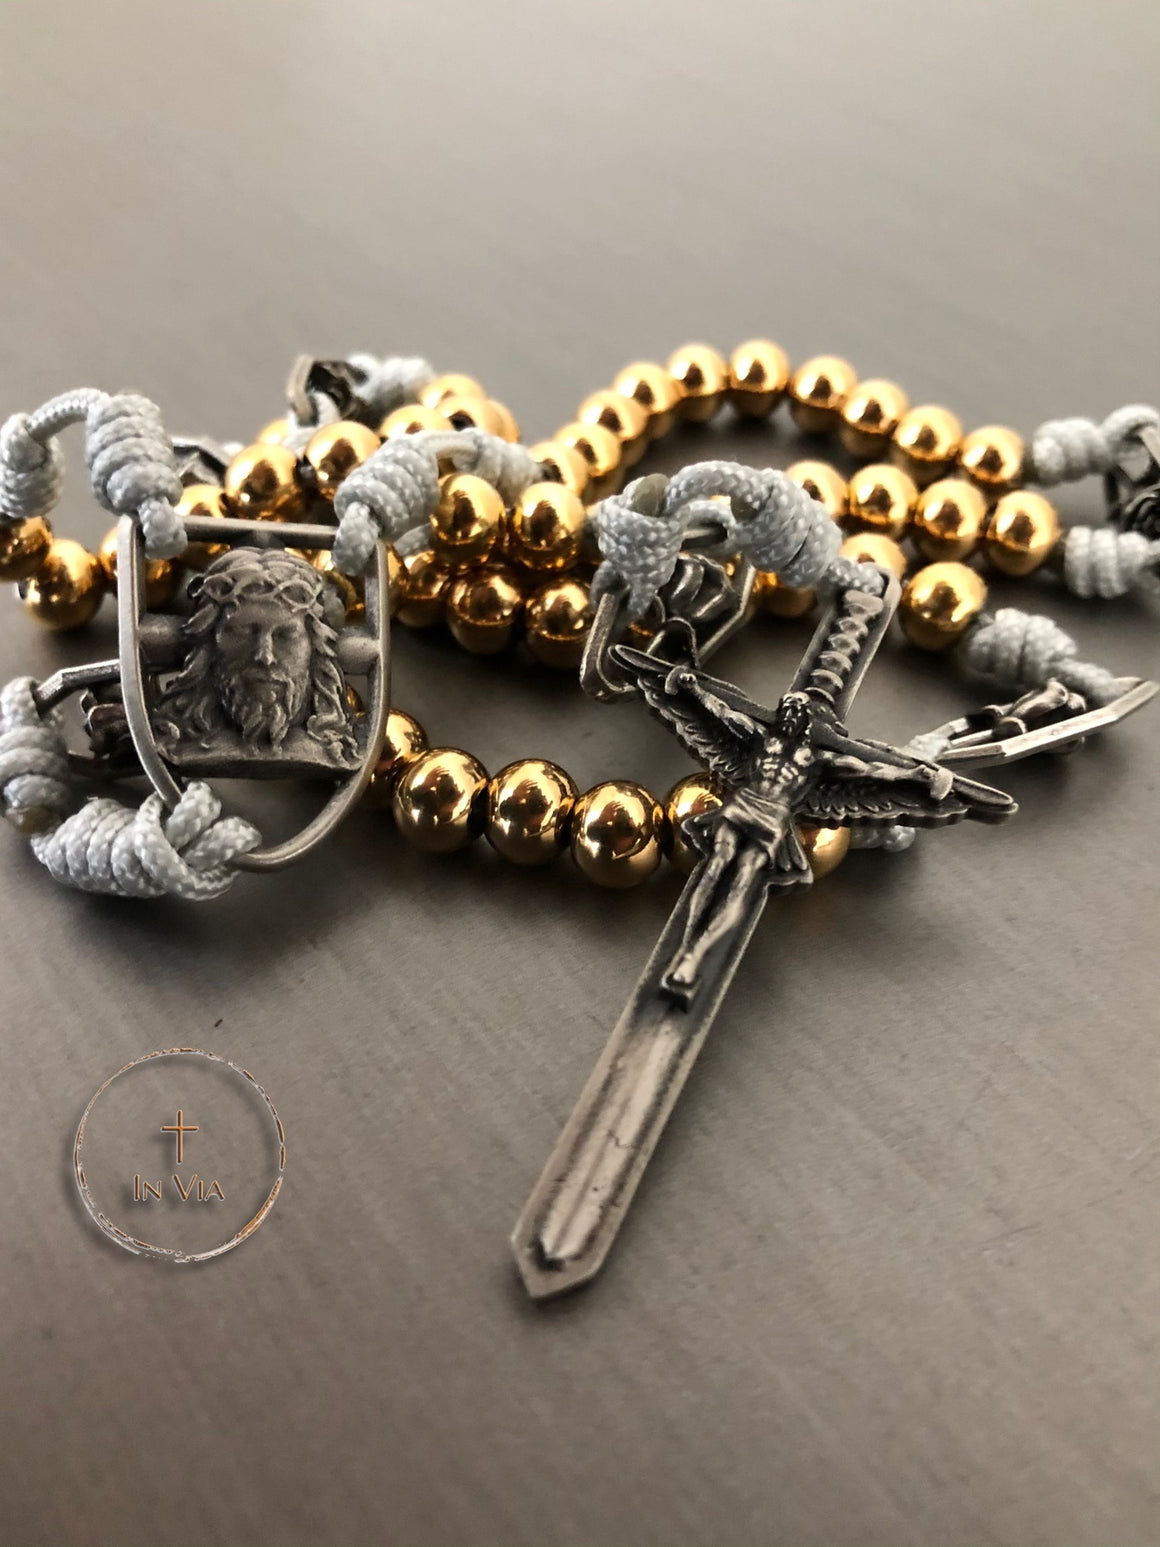 In Via Prince of Peace Octo Metallum Rosary -Solid White Bronze & Gold Stainless Steel